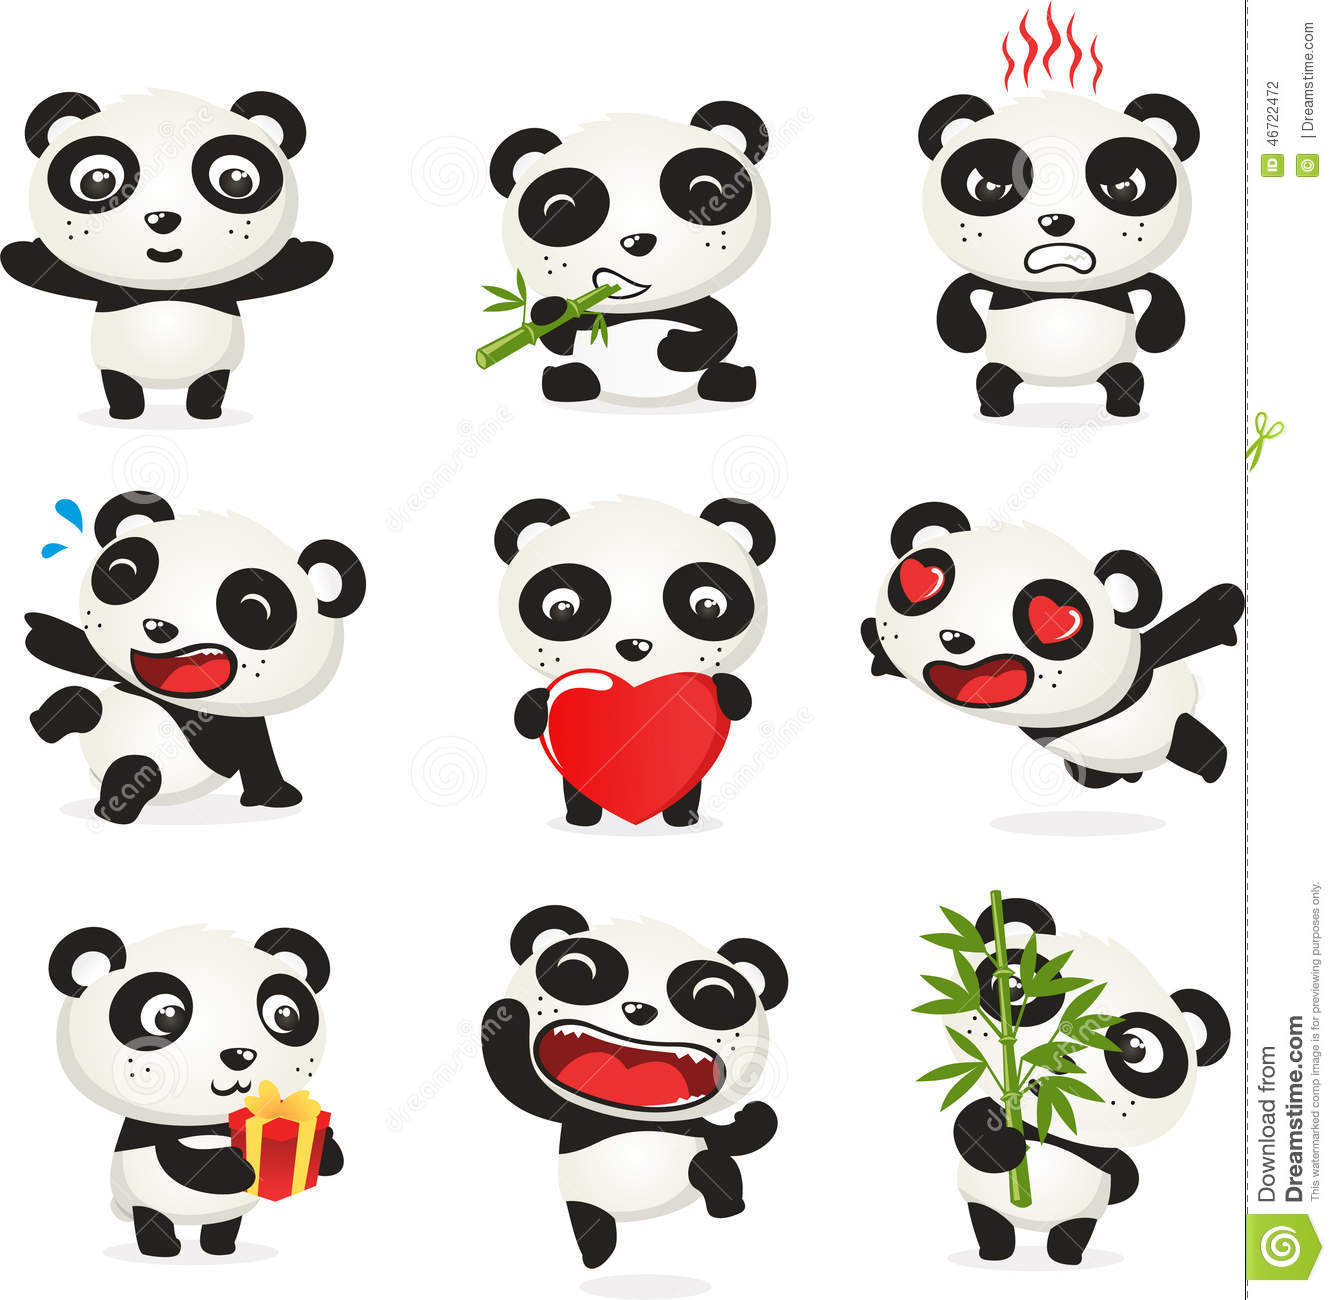 Bear Wall Stickers Cute Panda Cartoon Set Stock Illustration Image 46722472